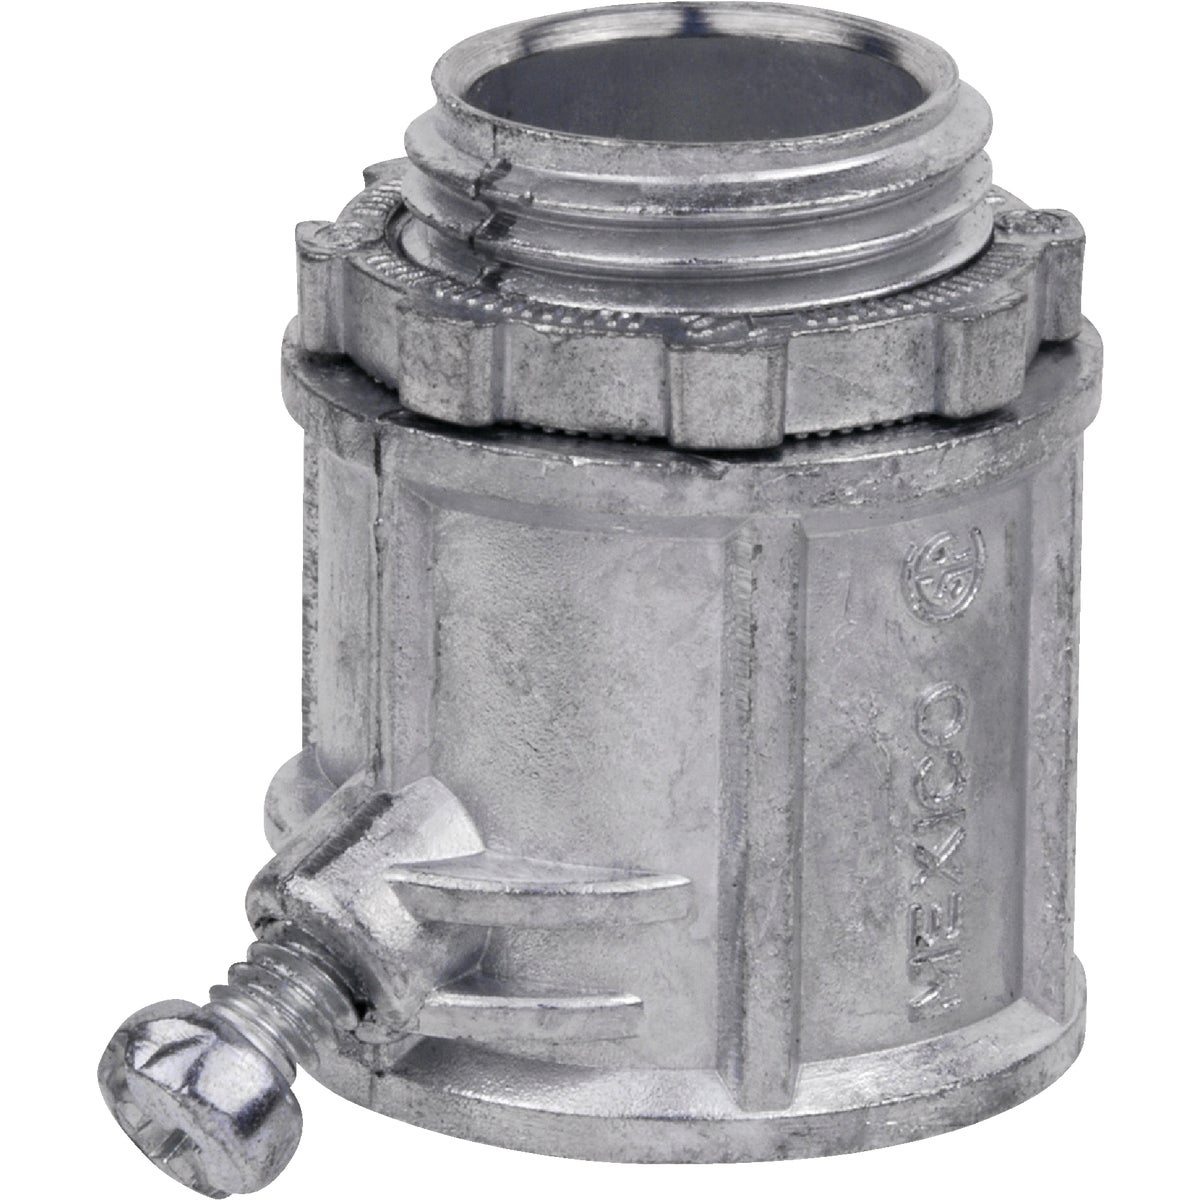 "5PC 1/2"" FLEX CONNECTOR - XC2215 by Thomas & Betts"